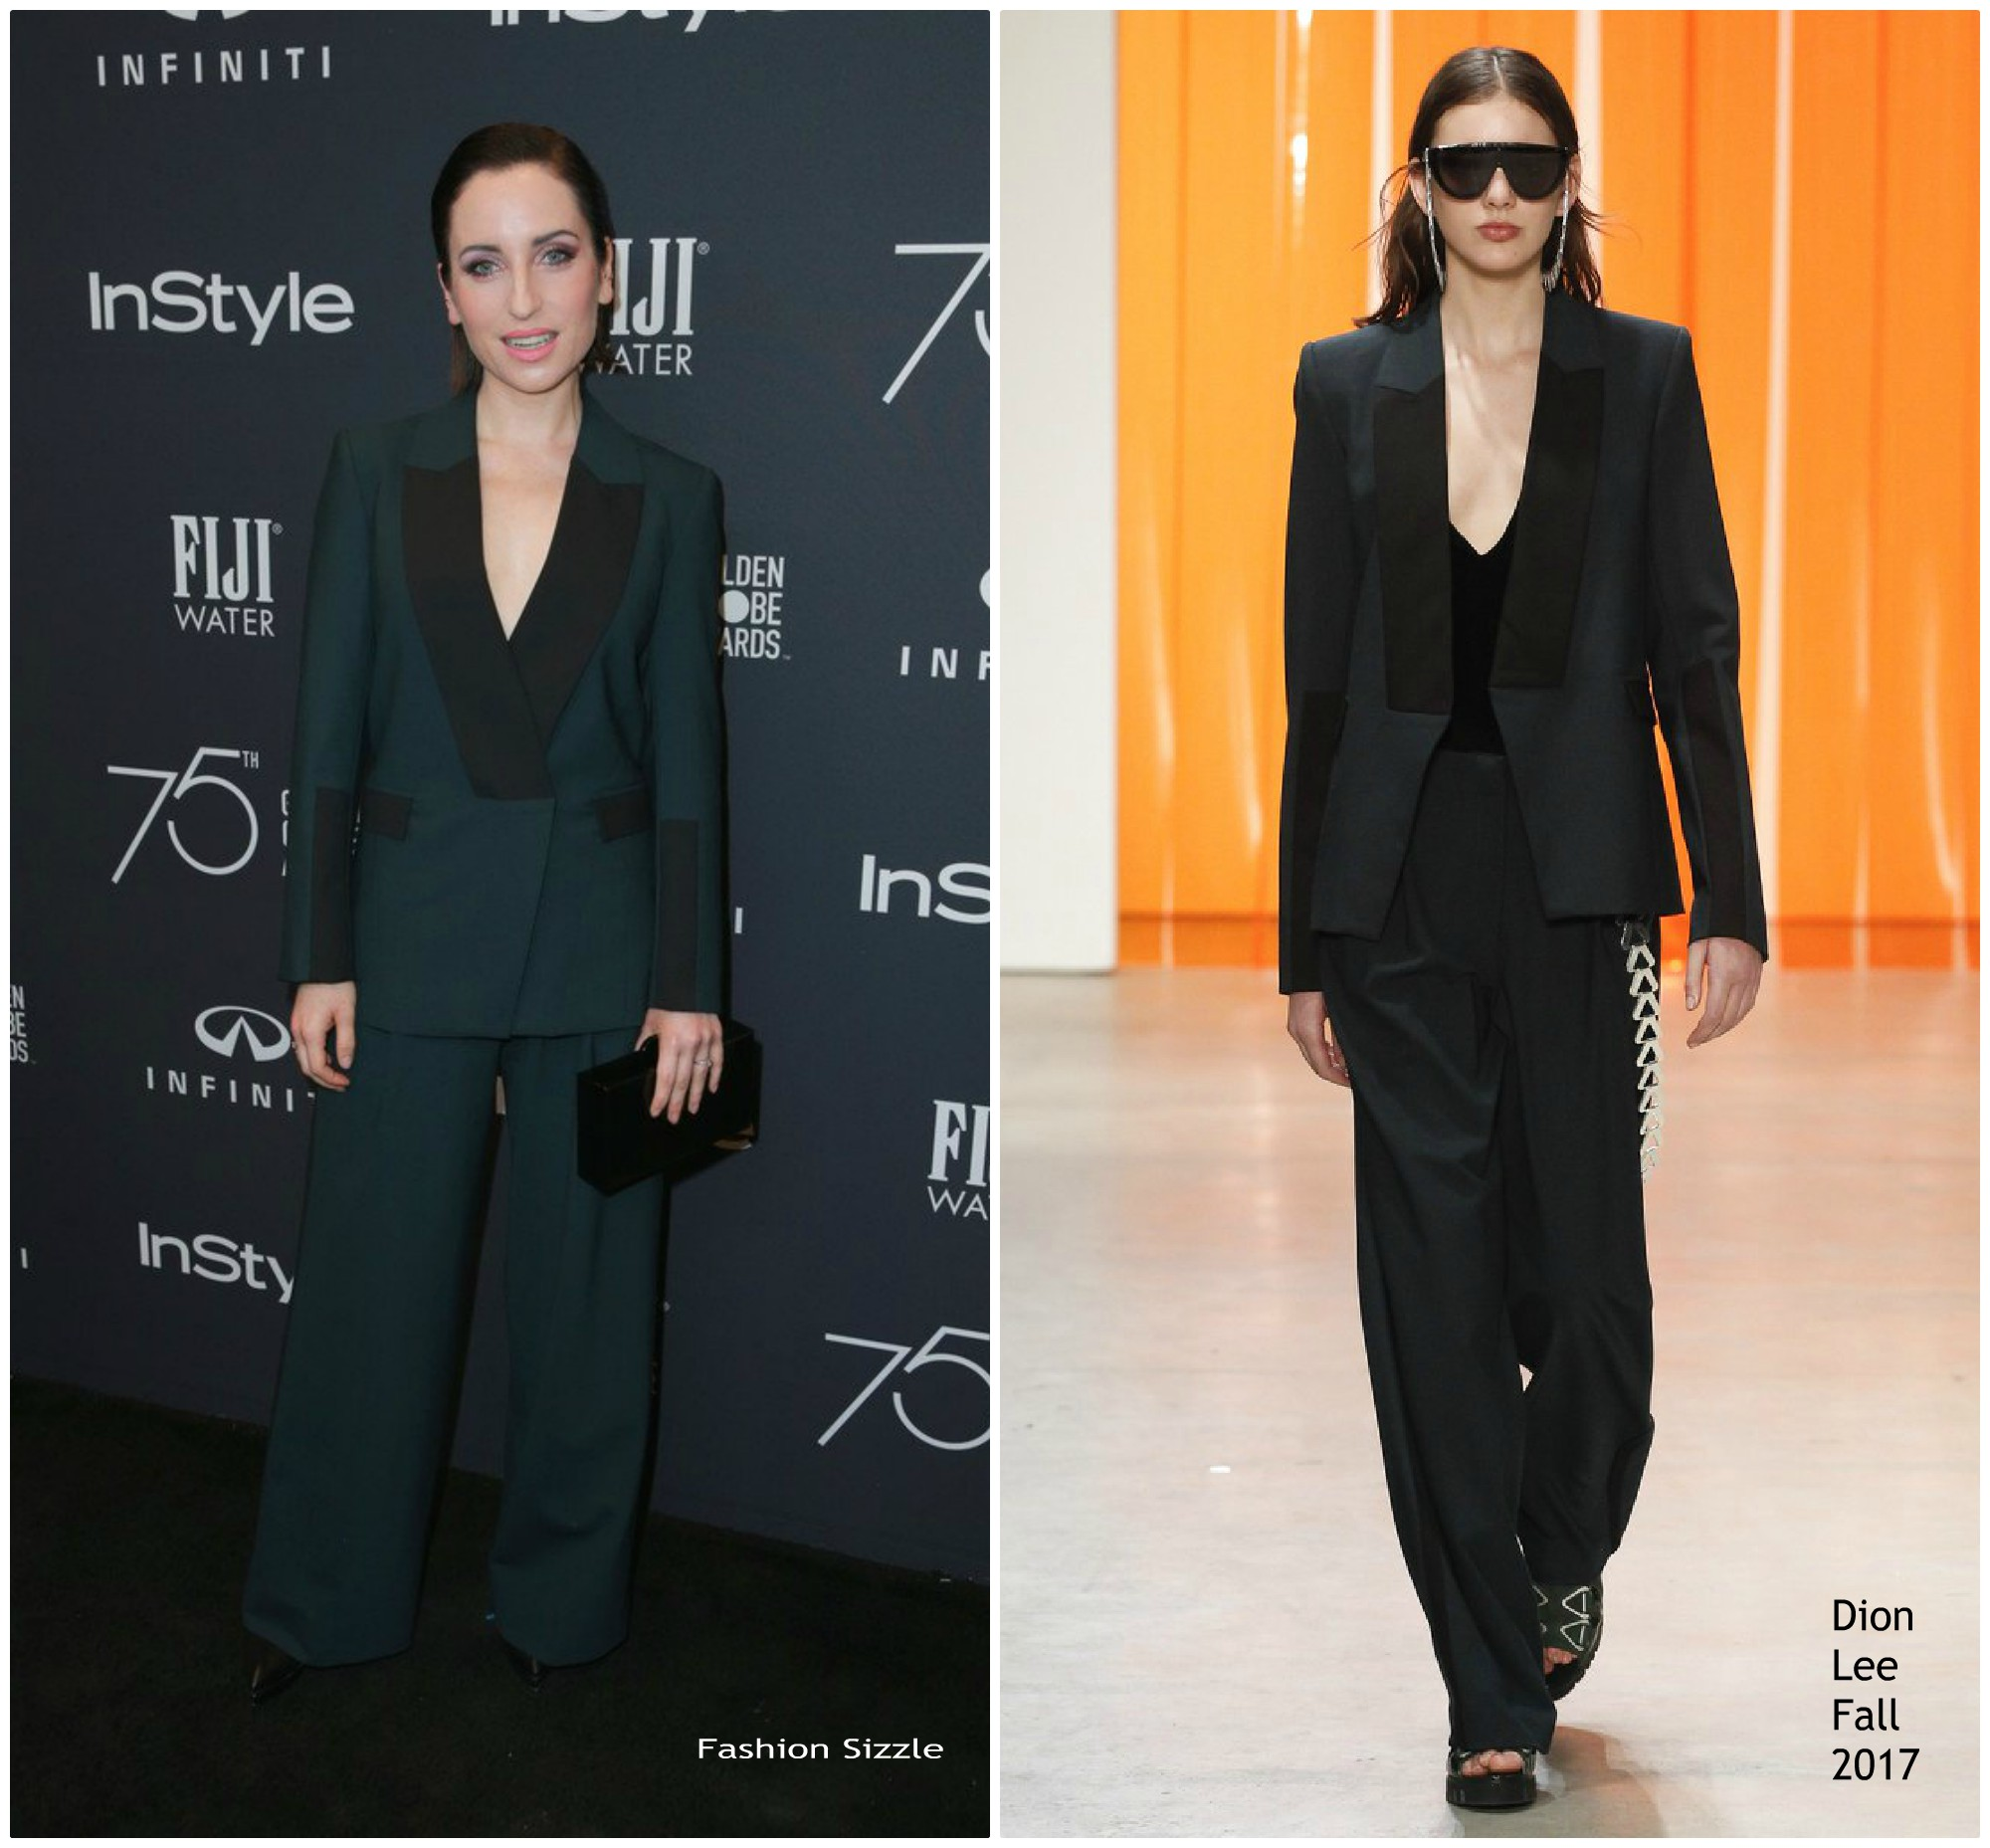 zoe-lister-in-dion-lee-hfpa-instyle-celebration-of-the-2018-golden-globe-awards